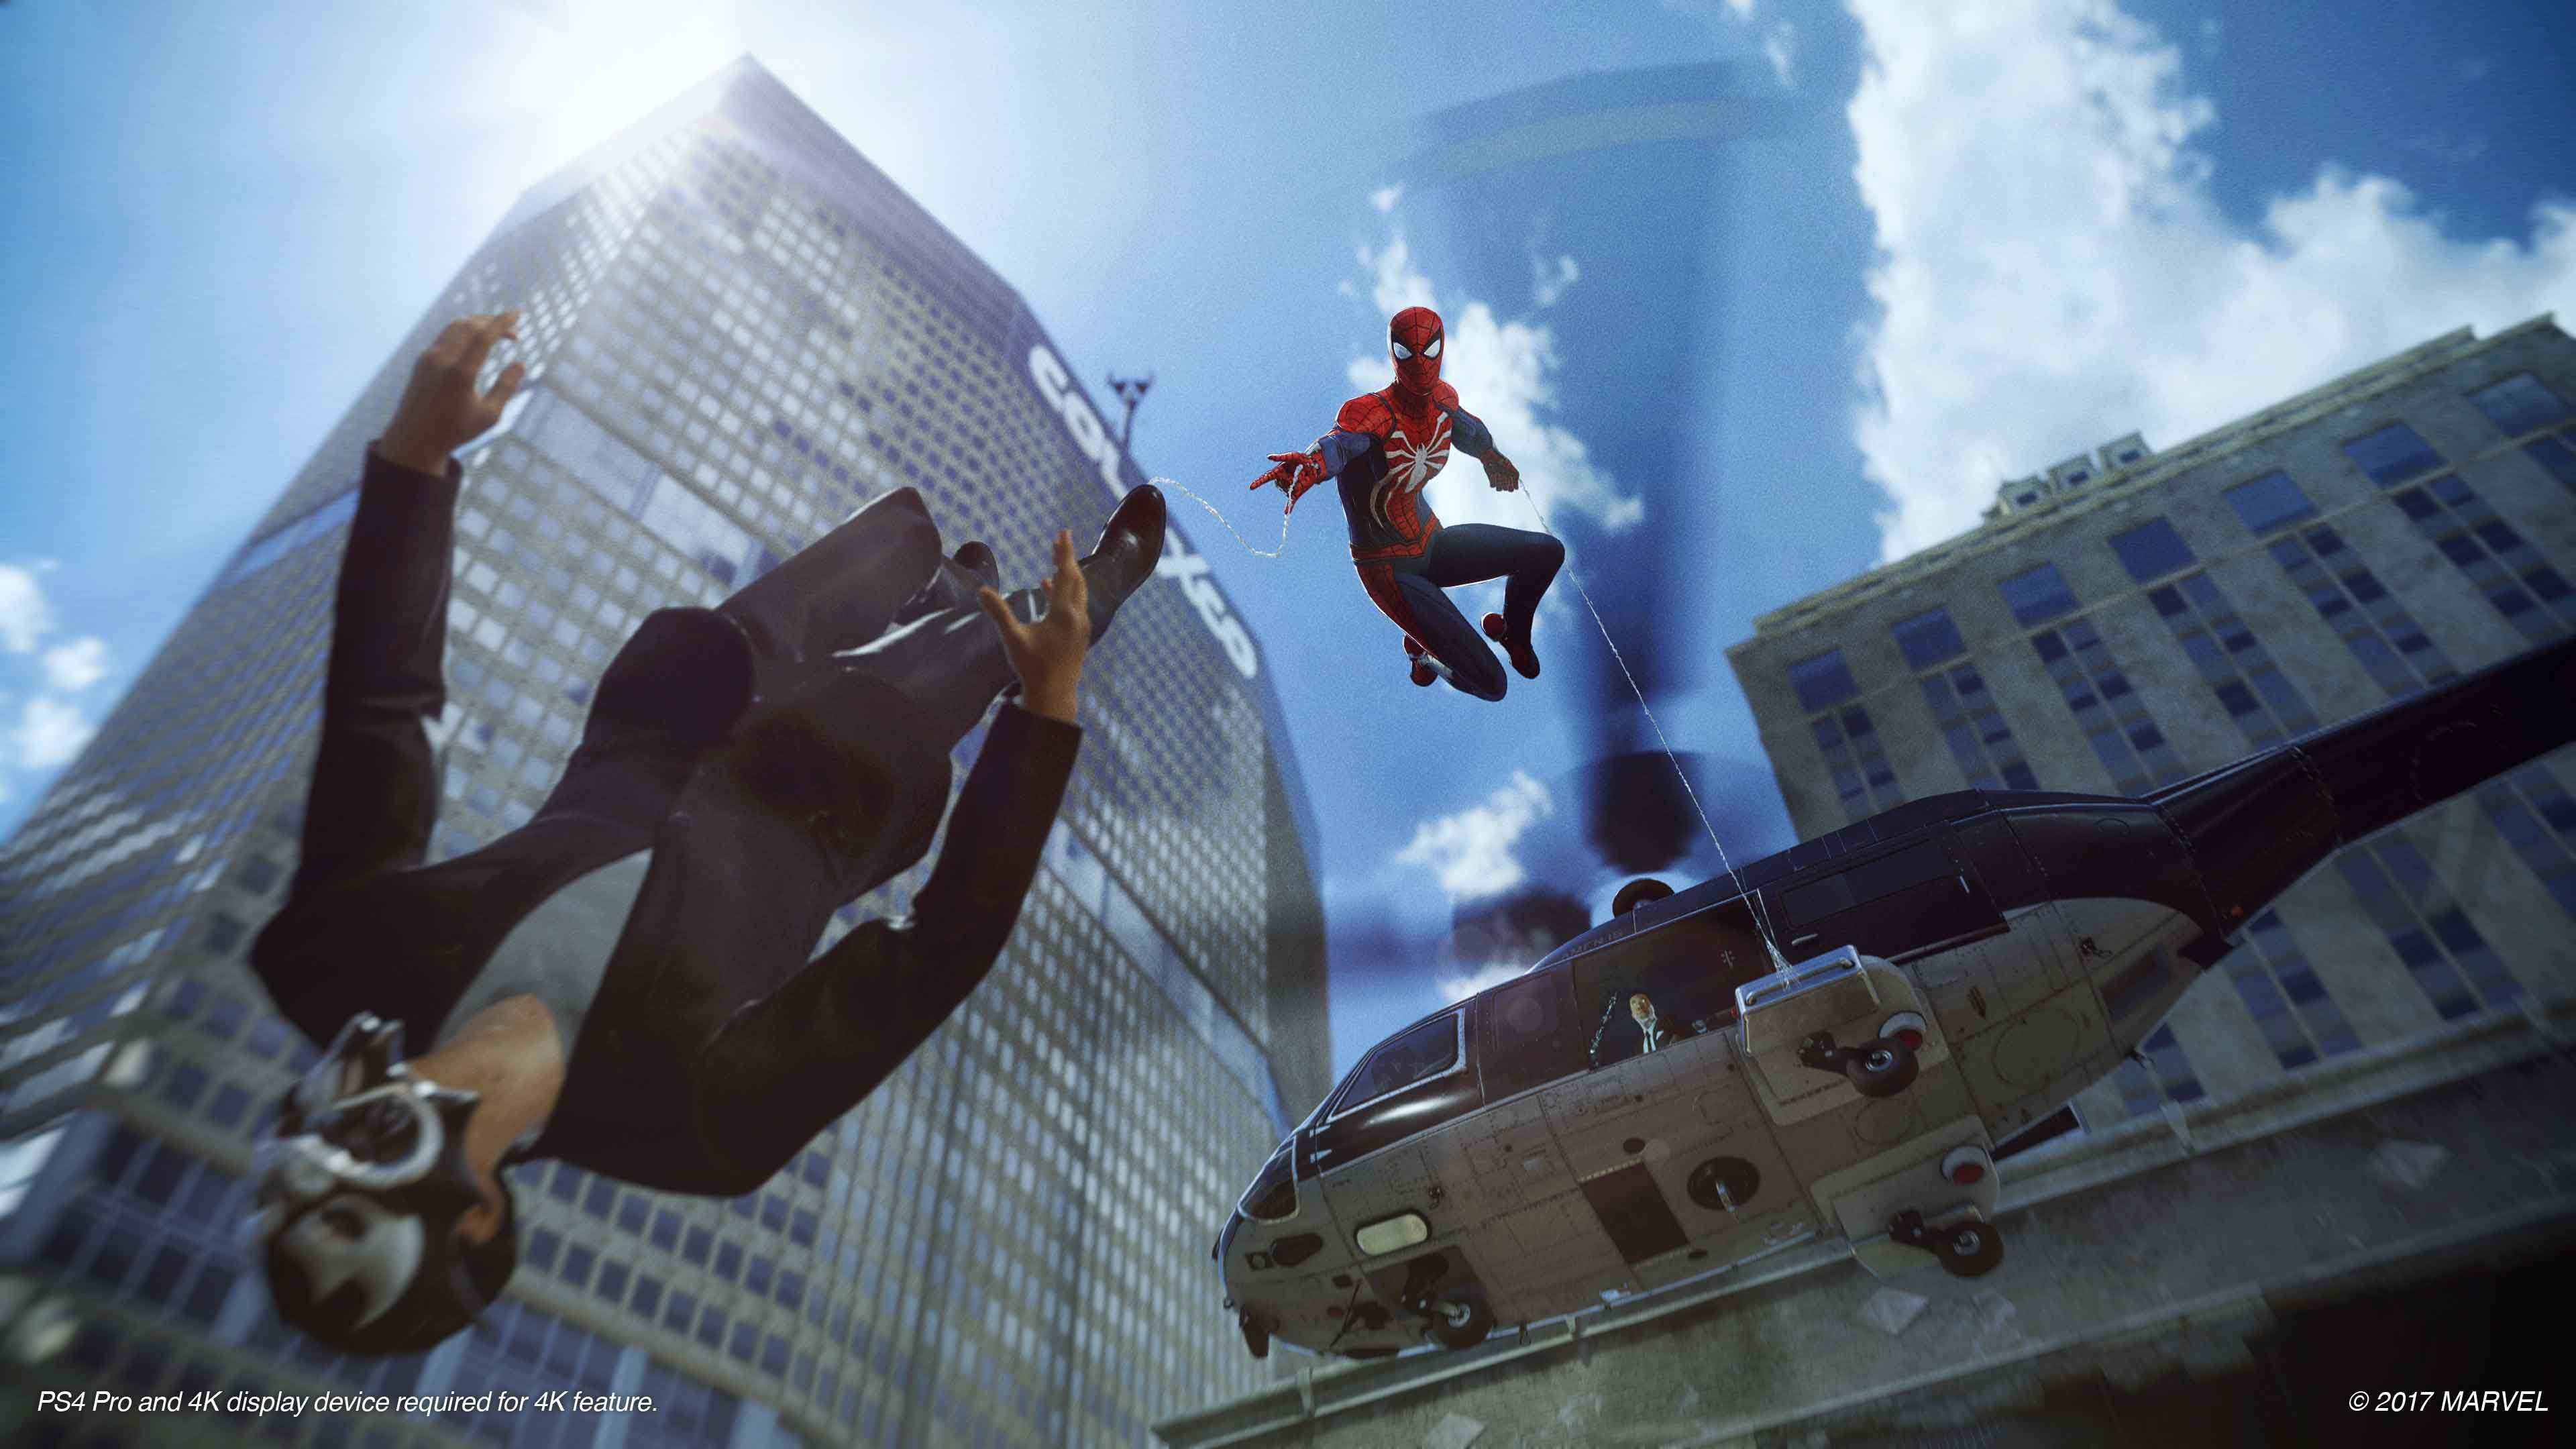 Pin by Games on SpiderMan Sunset overdrive, Marvel